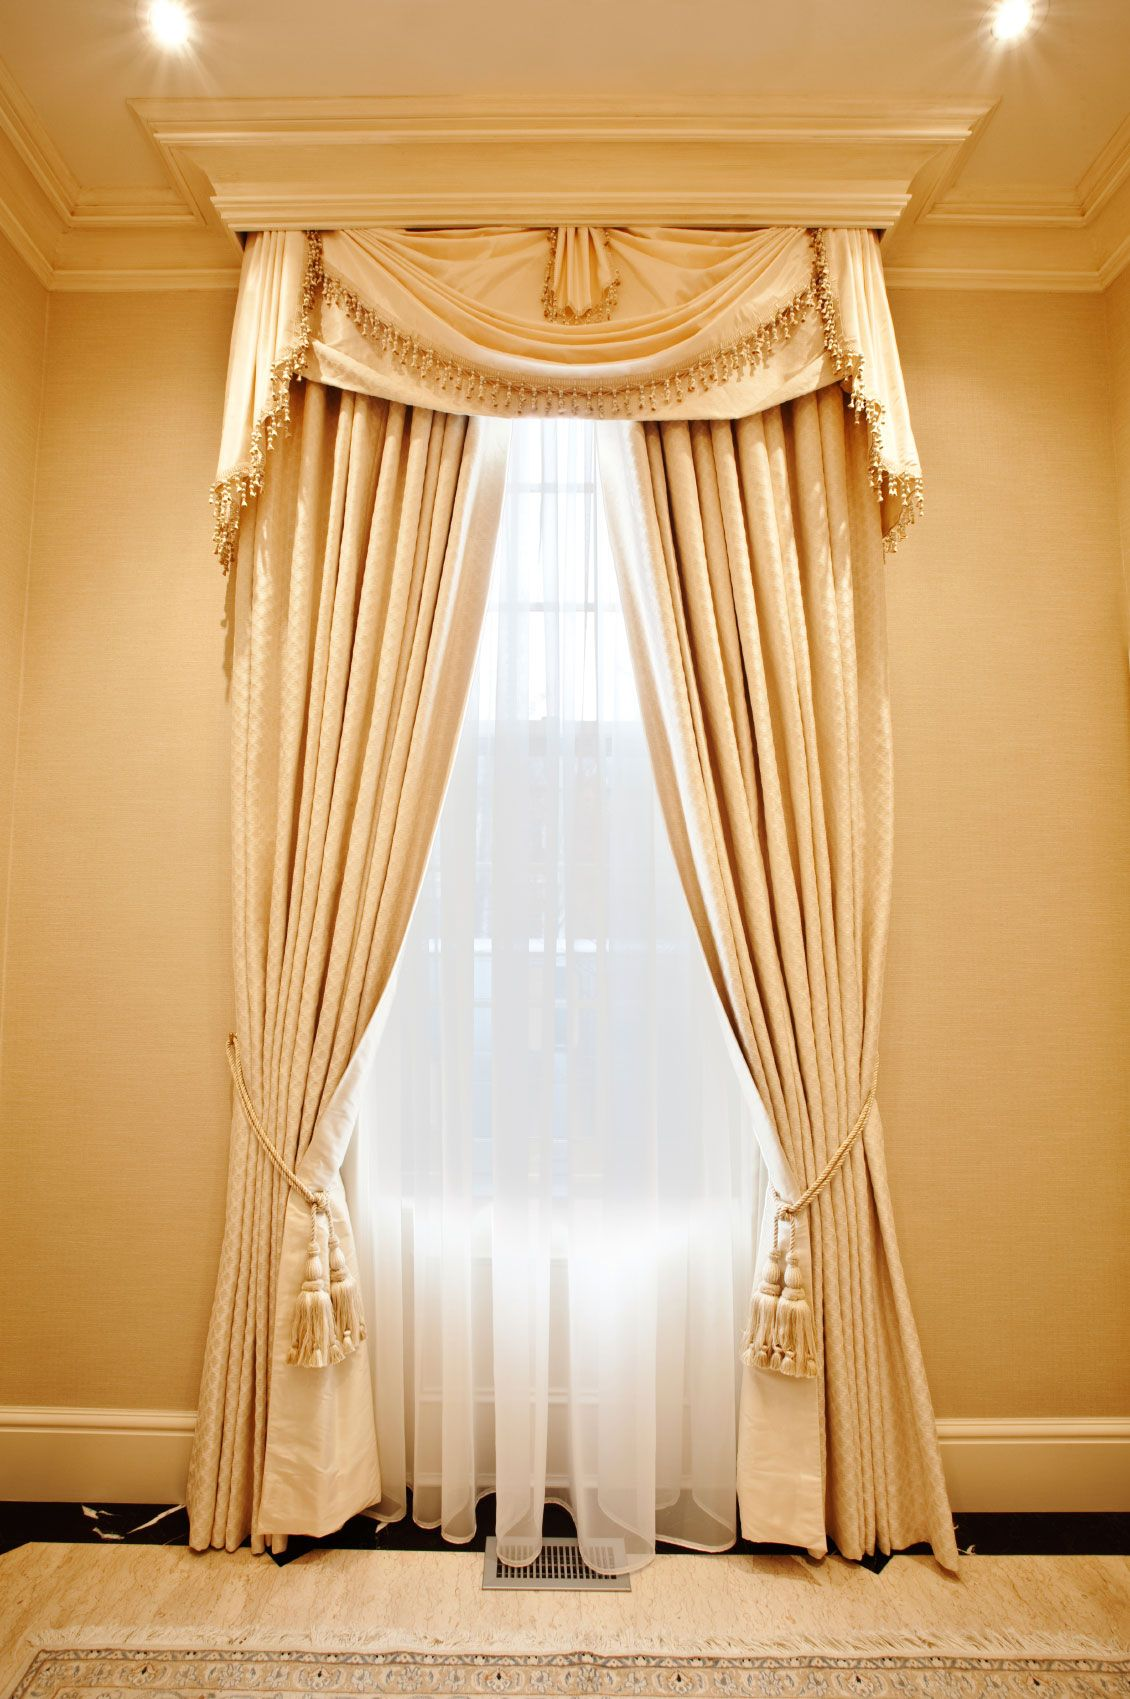 Home decor ideas curtain ideas to enhance the beauty of rooms luxury curtain ideas ideas - Curtain new design ...